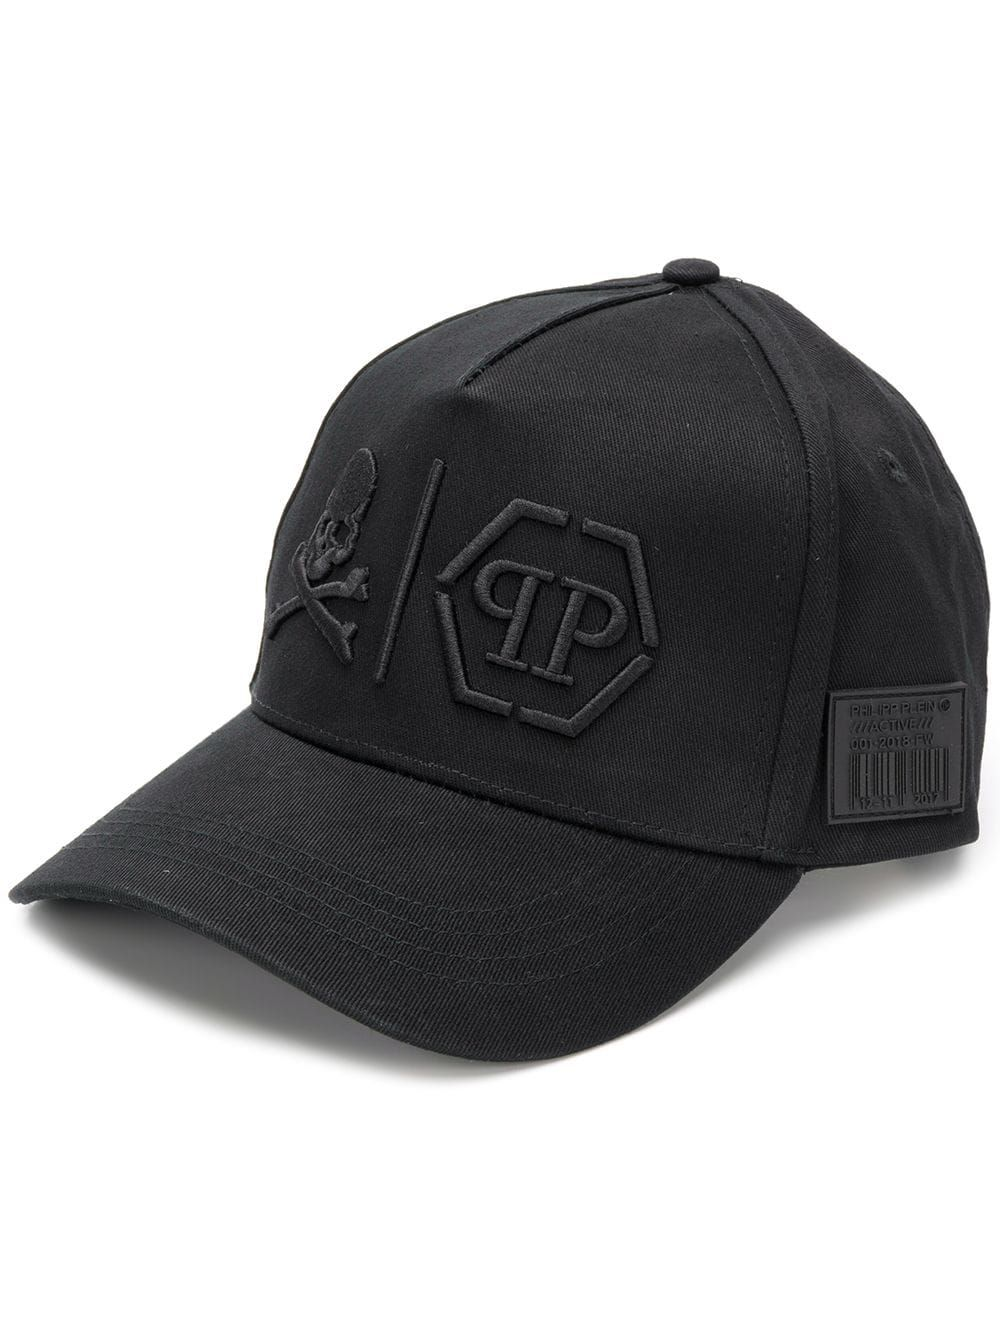 competitive price 3c5d8 ae5cd PHILIPP PLEIN PHILIPP PLEIN  SIMPLE SKULL  CAP - BLACK.  philippplein